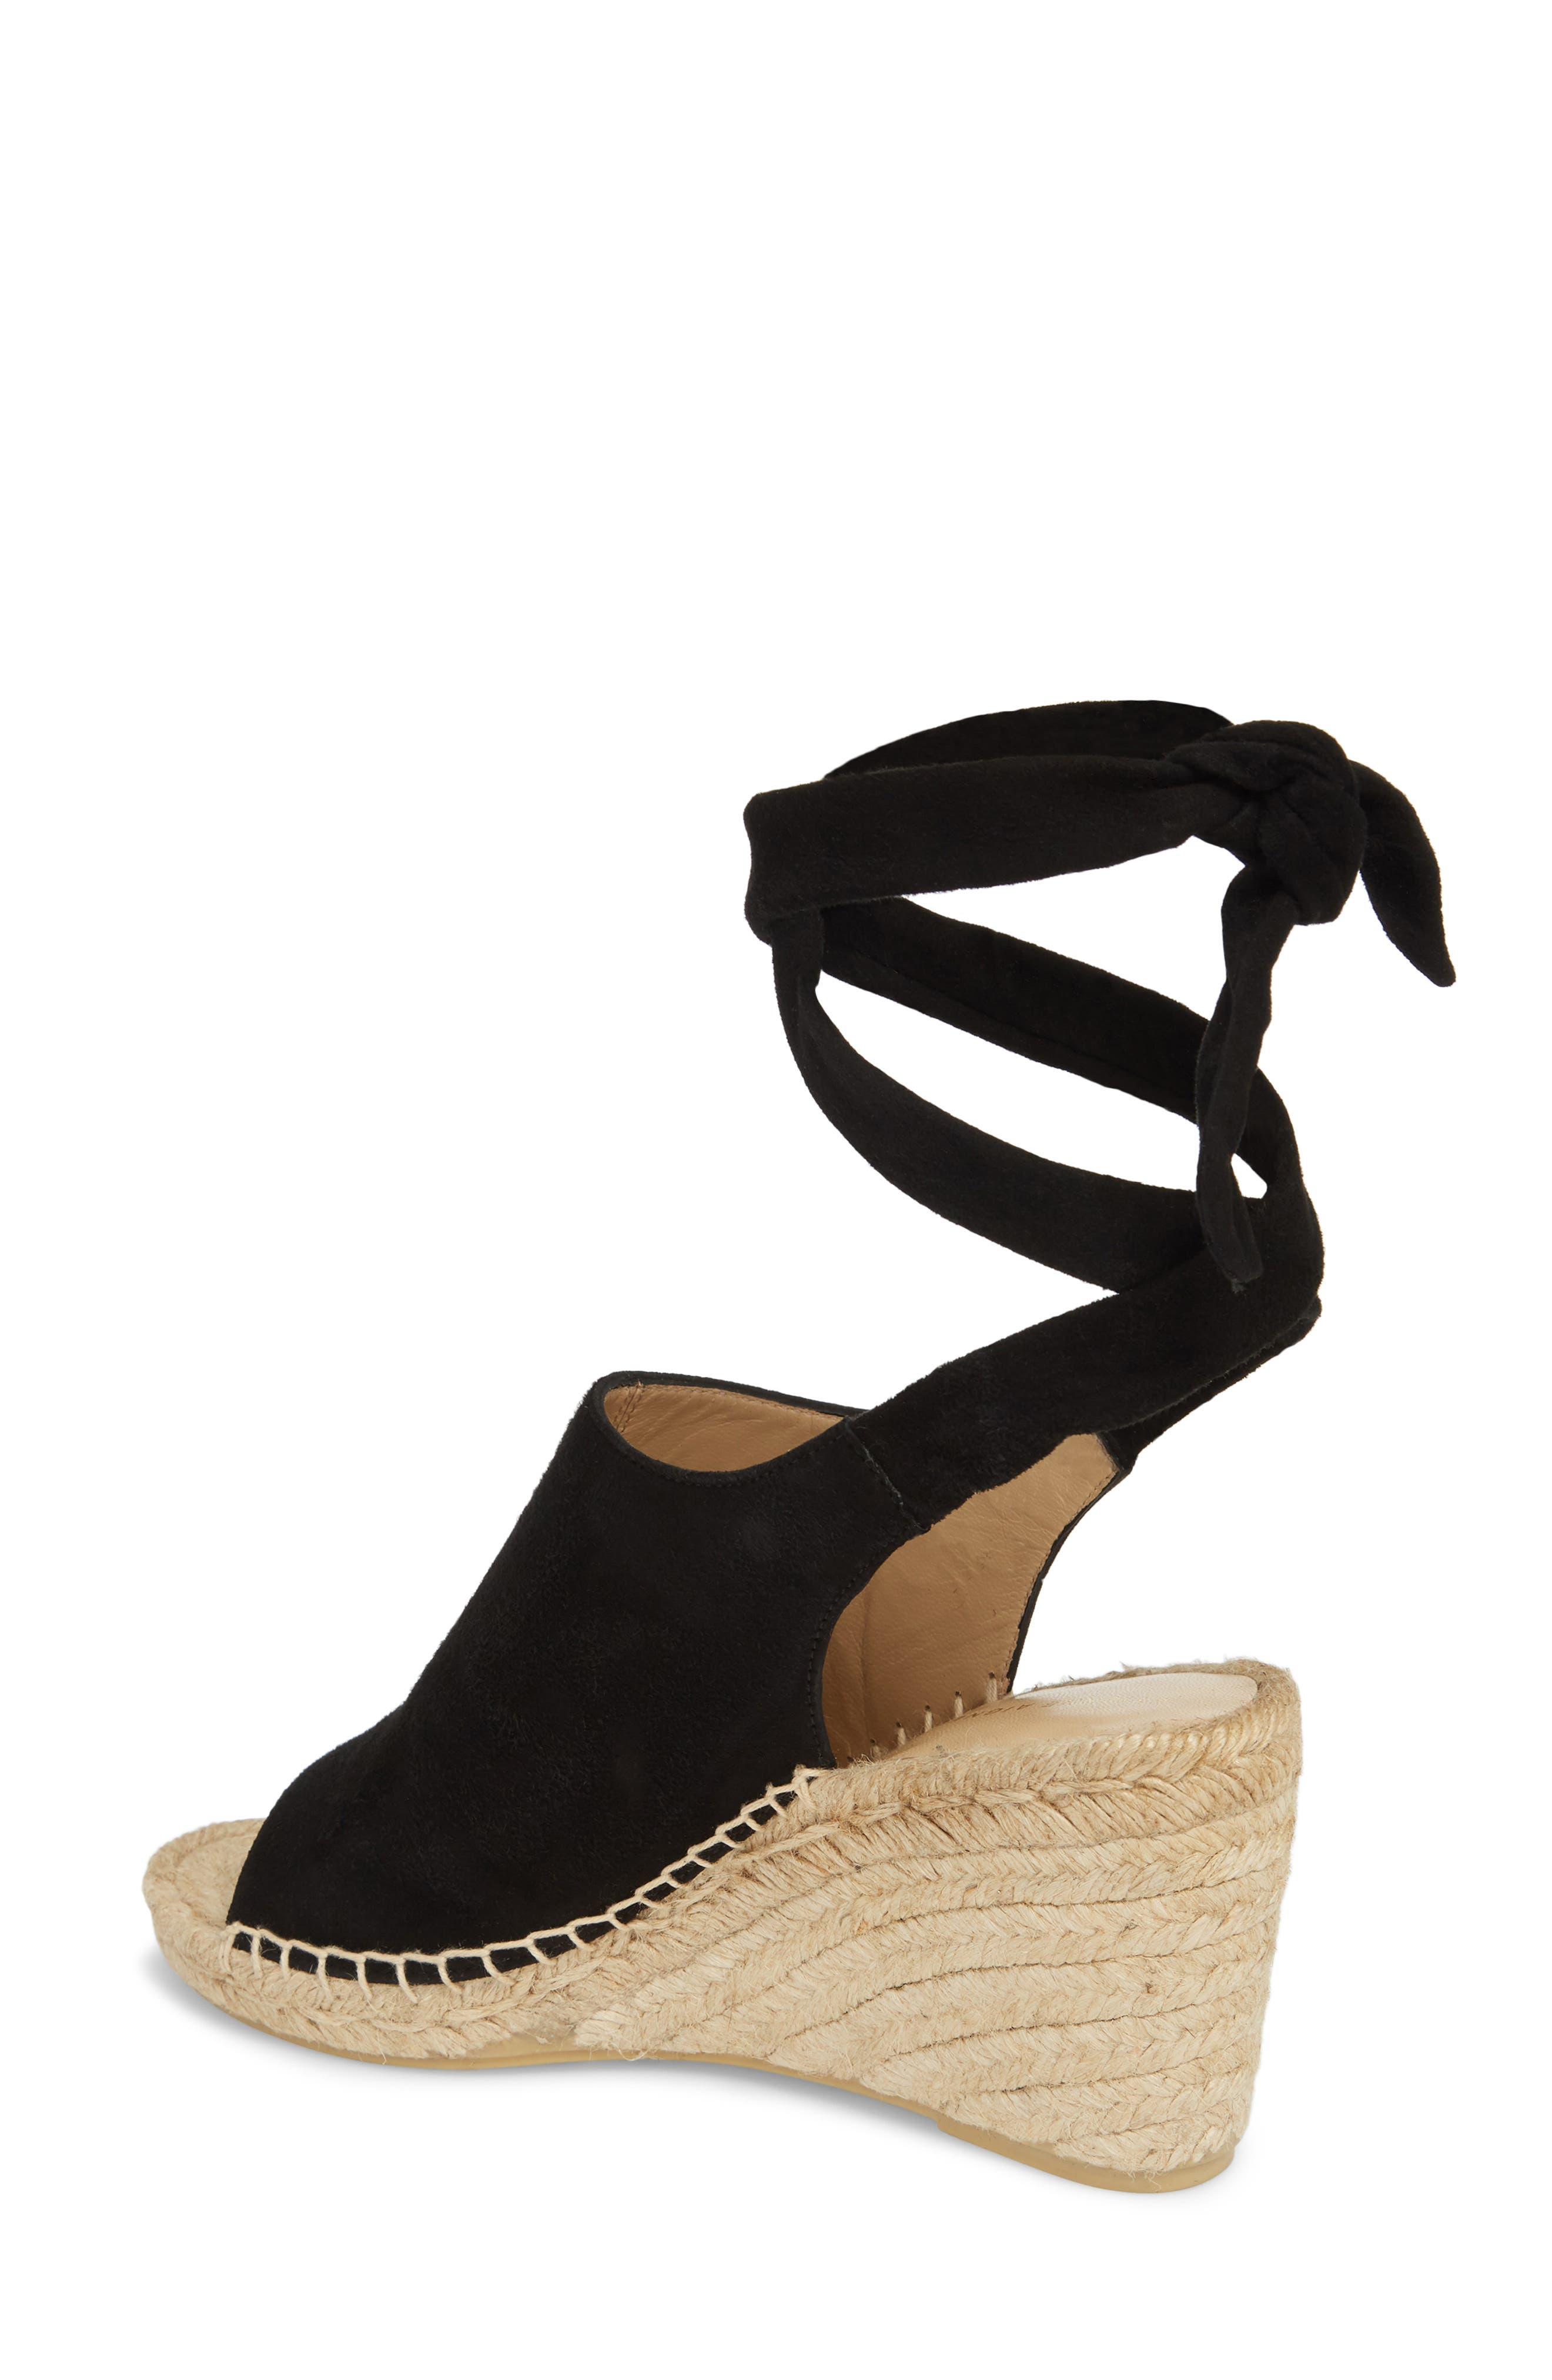 Vie Espadrille Wedge Sandal,                             Alternate thumbnail 2, color,                             BLACK SUEDE